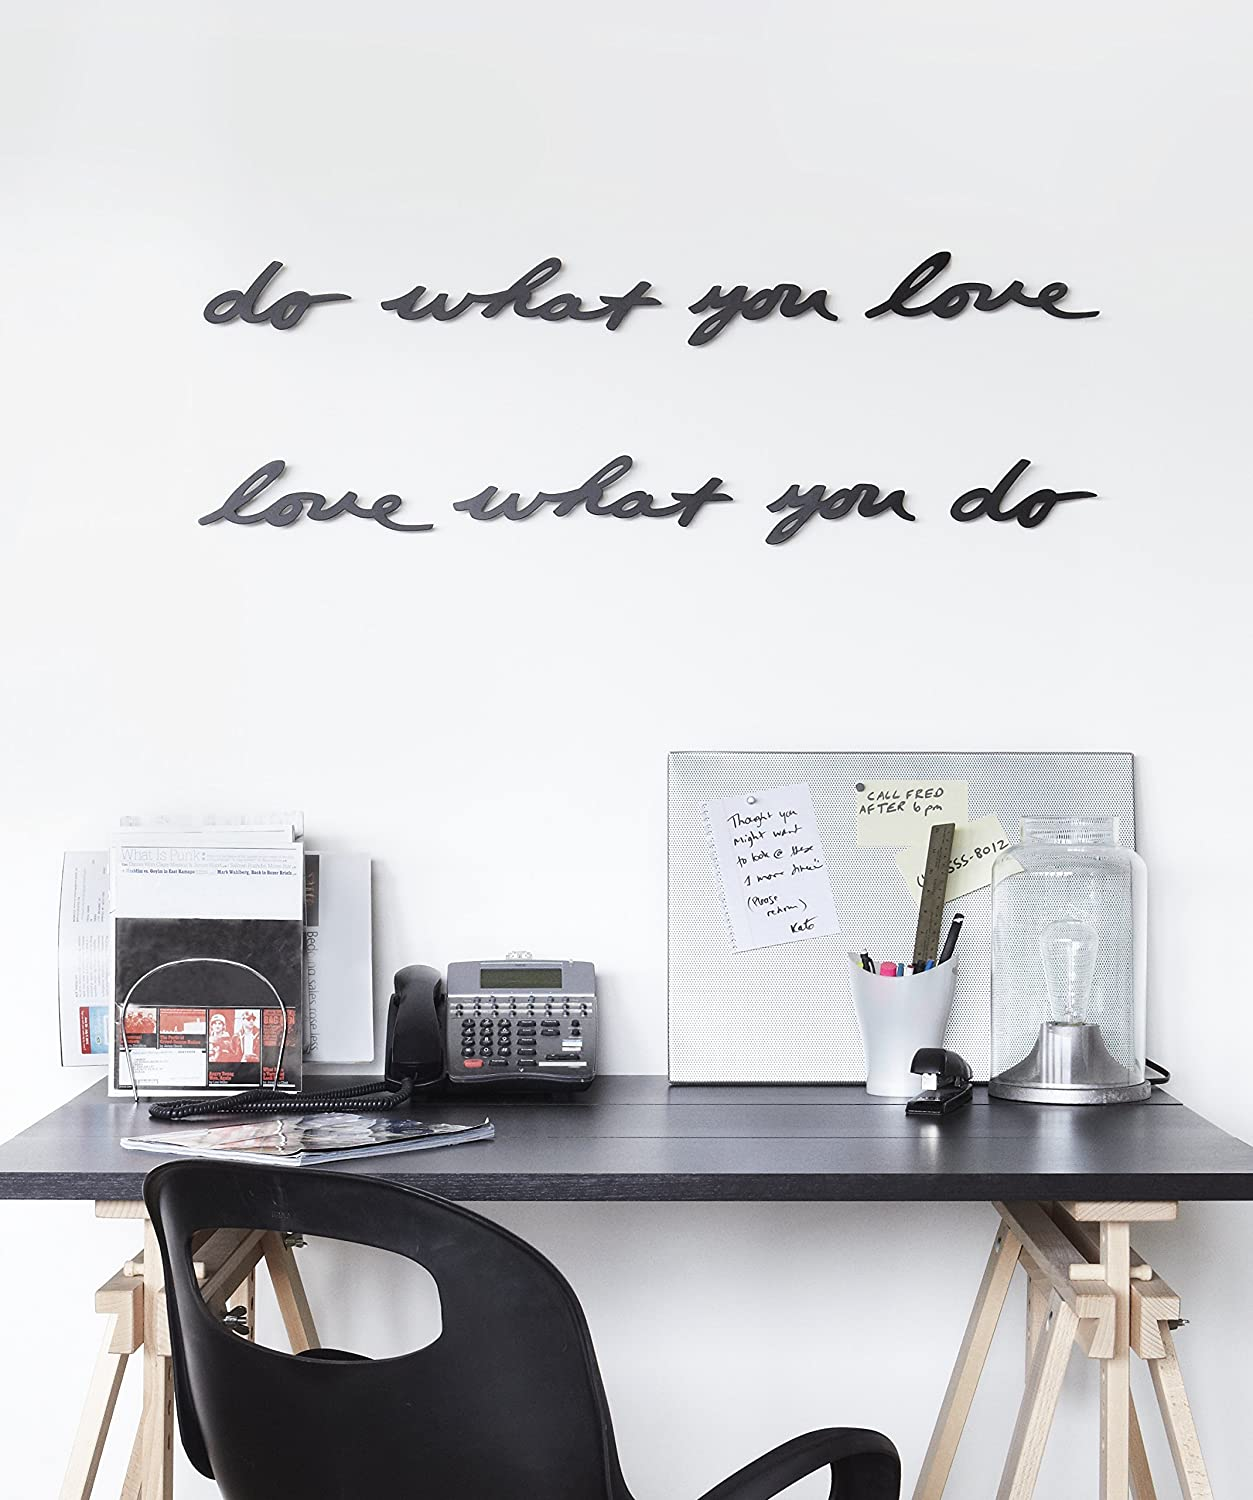 Umbra Metal Wall Decor : Umbra mantra do what you love metal wall decor phrase